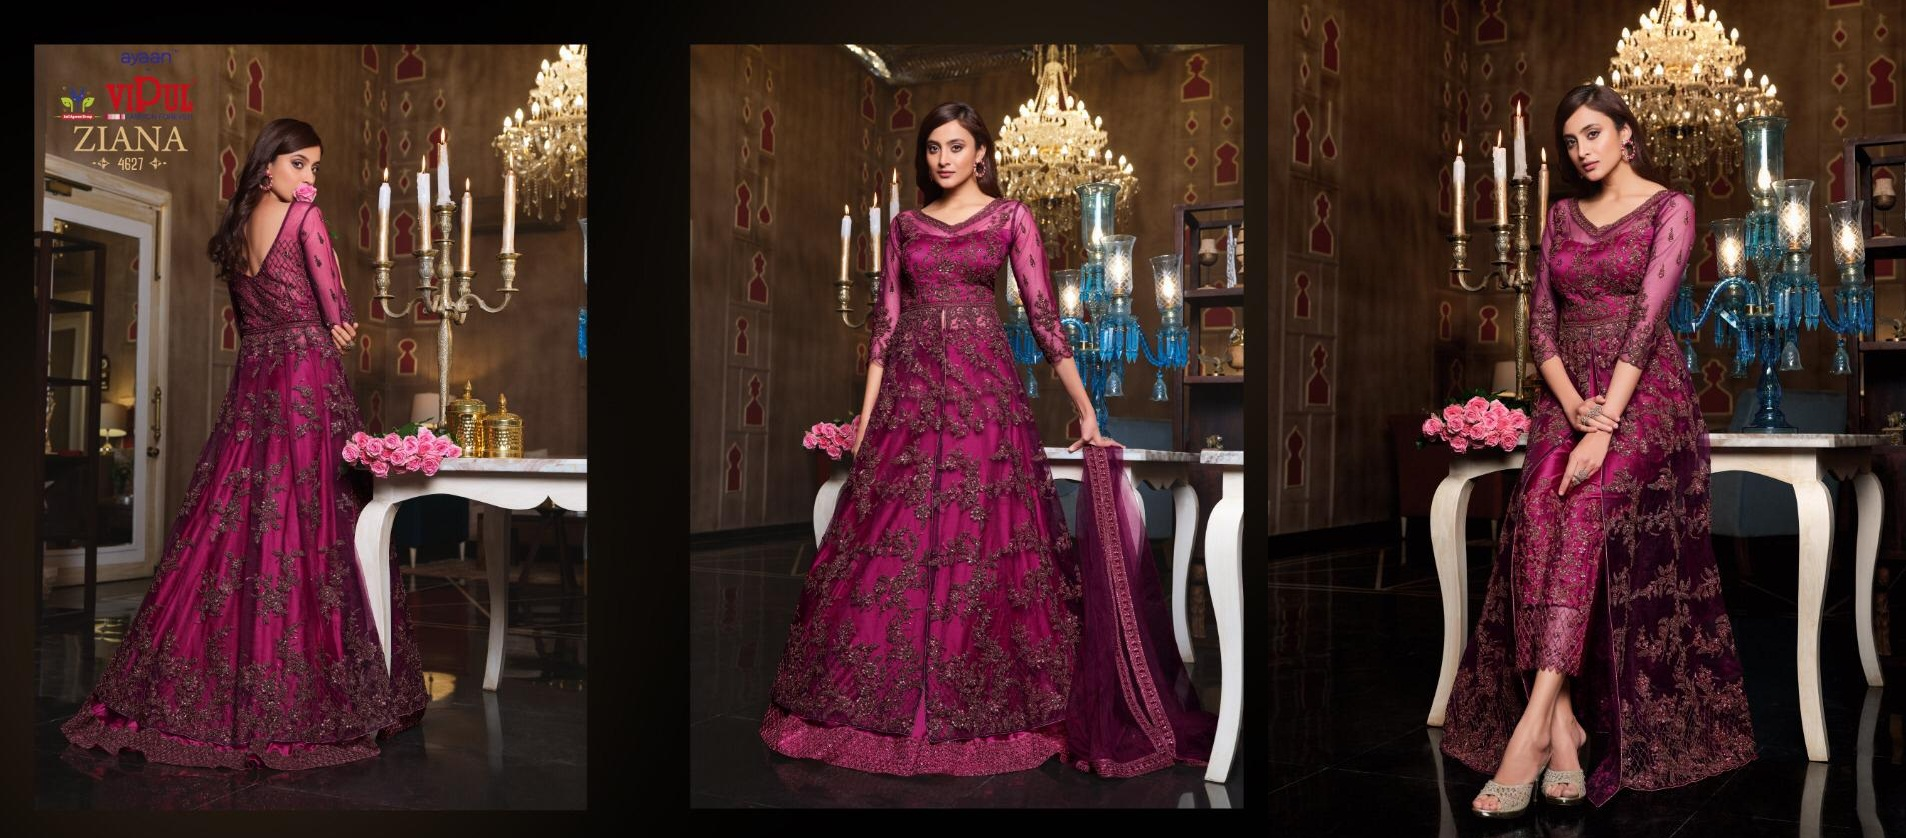 Vipul Ziana 4621 Series Heavy Wedding collection 11